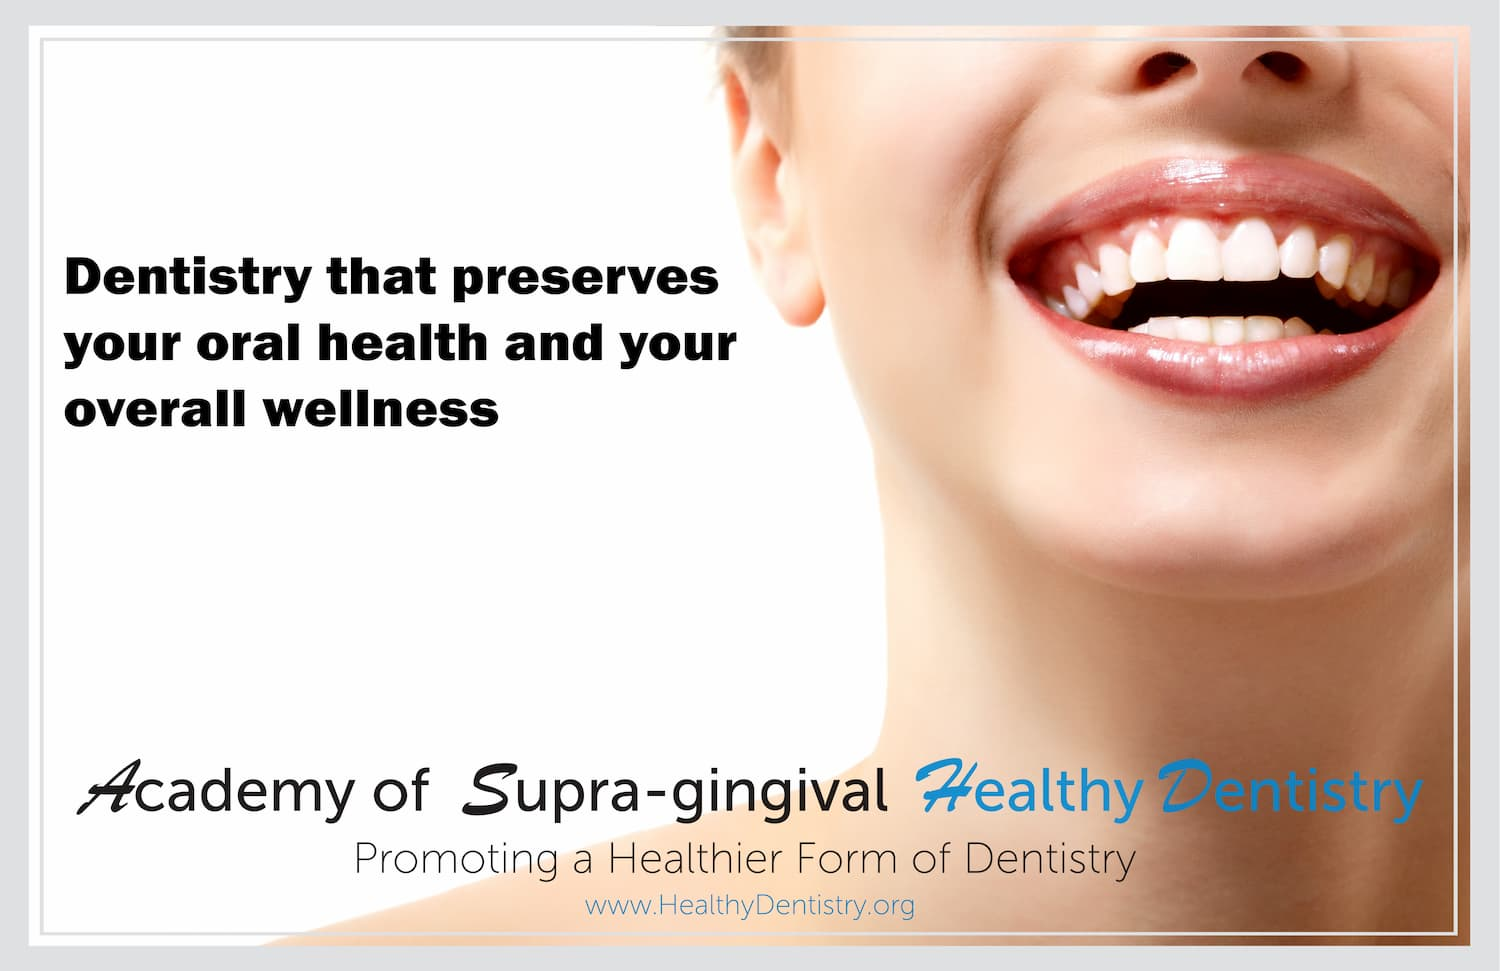 Dr. Wilson in Mount Horeb is a certified member of the Academy of Supra-gingival Healthy Dentistry.